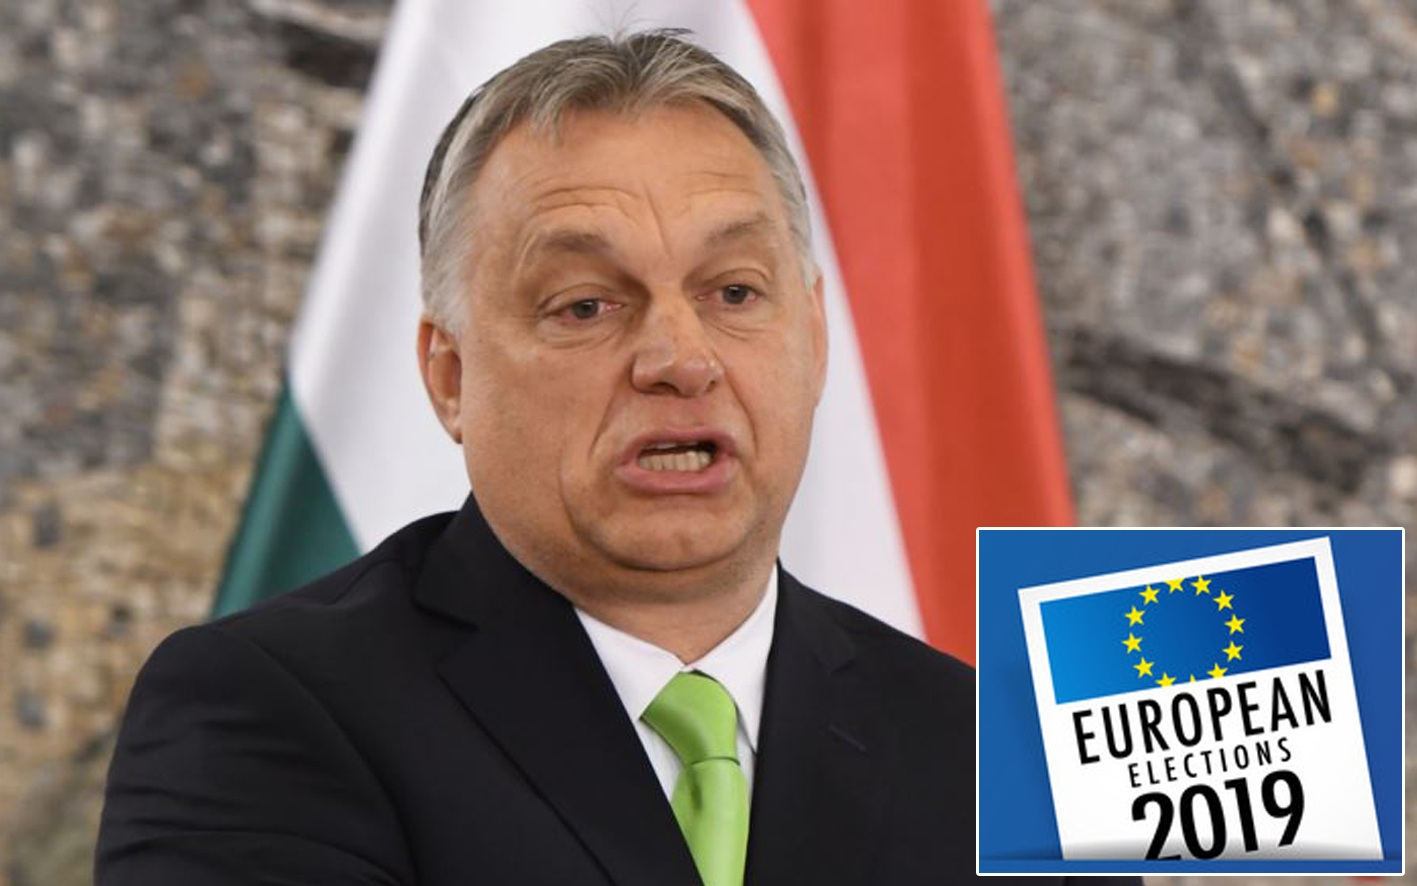 Christian Democracy will replace multiculturalism post EU Parliamentary polls – Hungary PM Viktor Orban